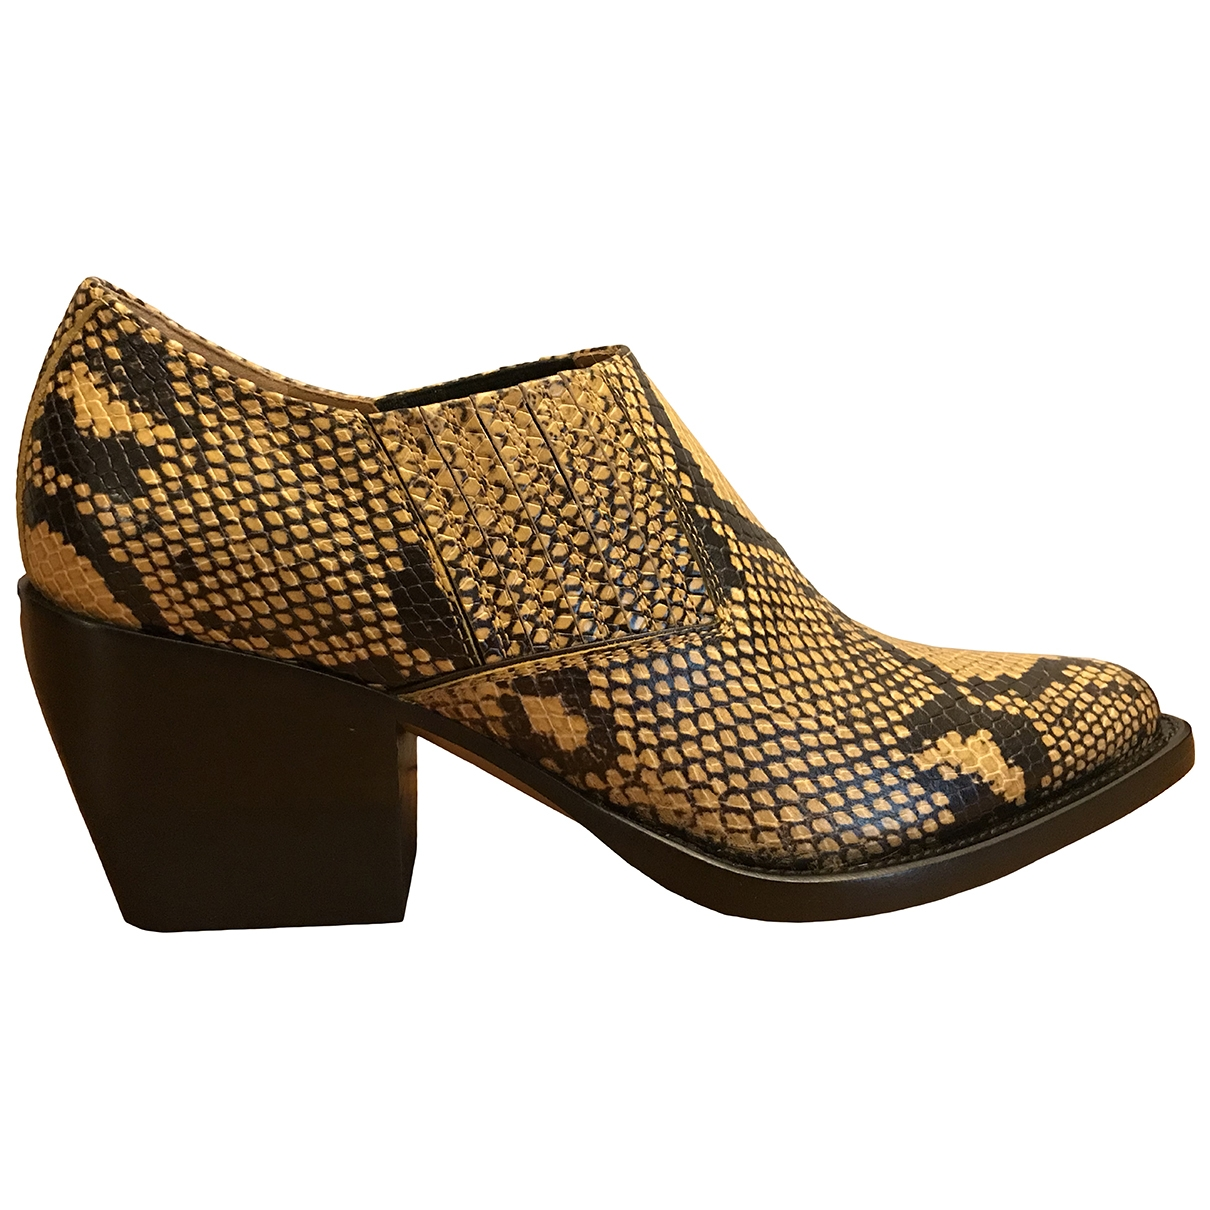 Chloé \N Yellow Leather Ankle boots for Women 37 EU